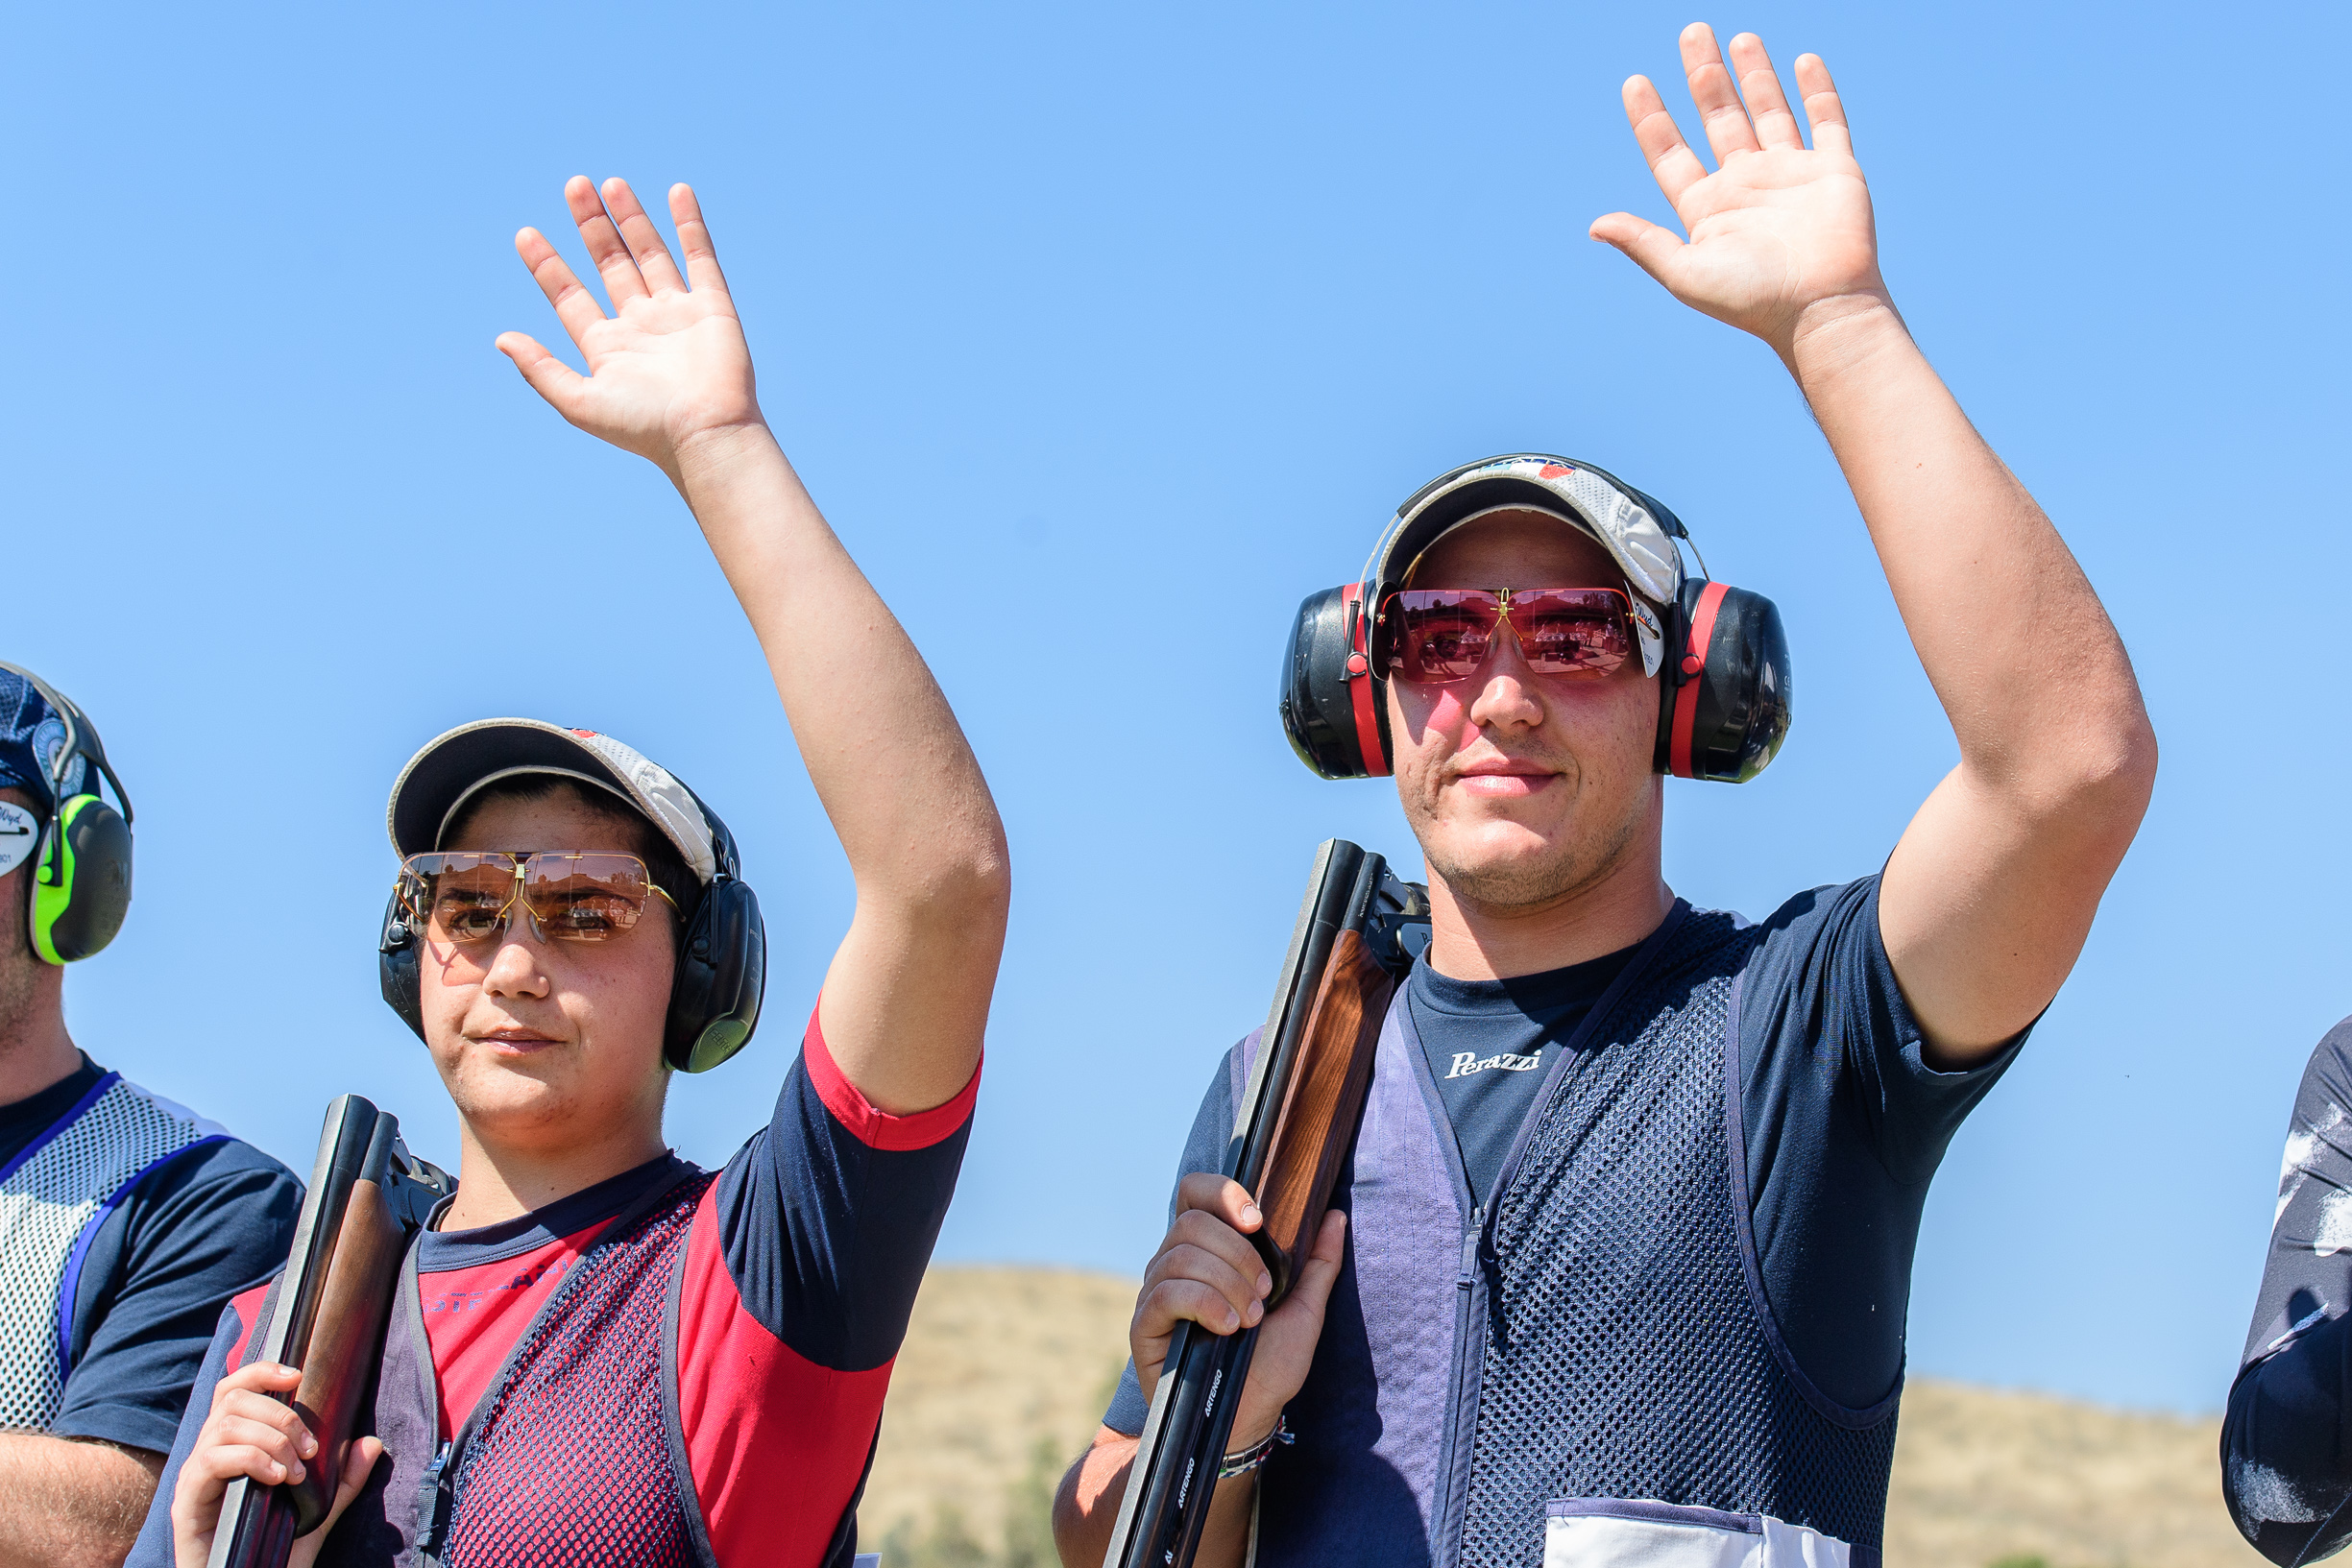 FIOCCHI TEAM: FOUR MEDALS AT THE ISSF WORLD CUP IN GUADALAJARA